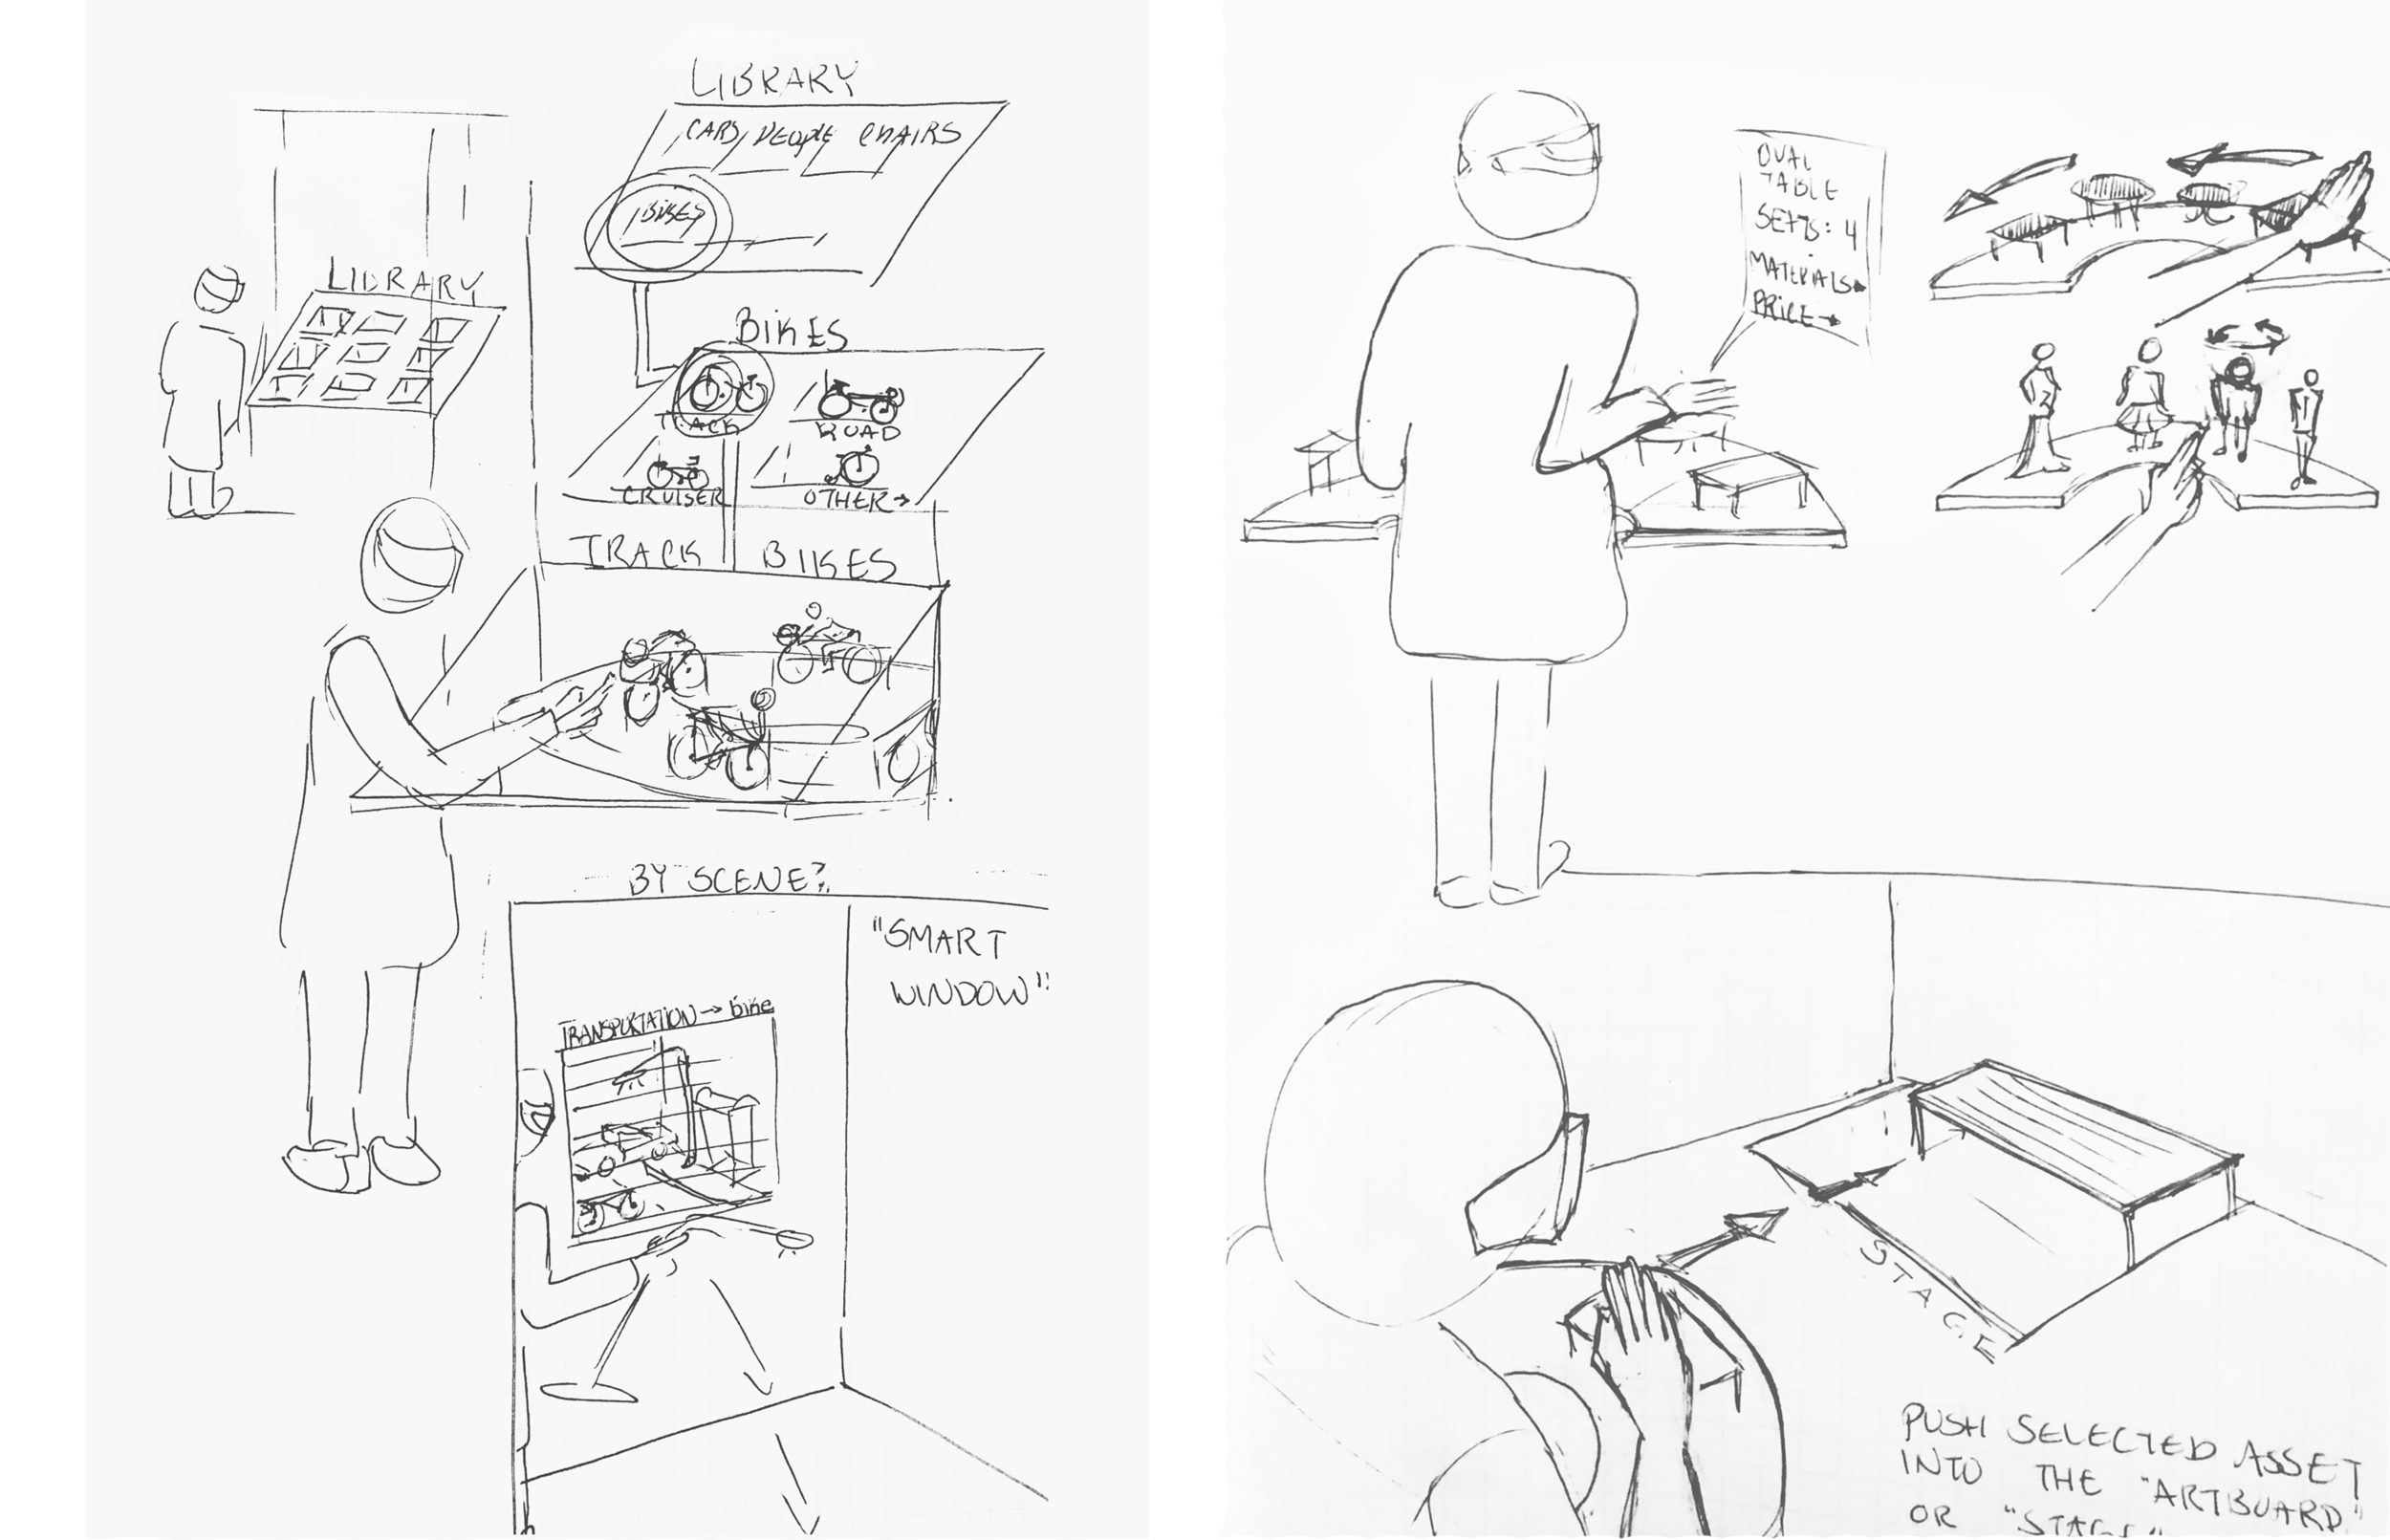 Sketches for object library and asset selection flows